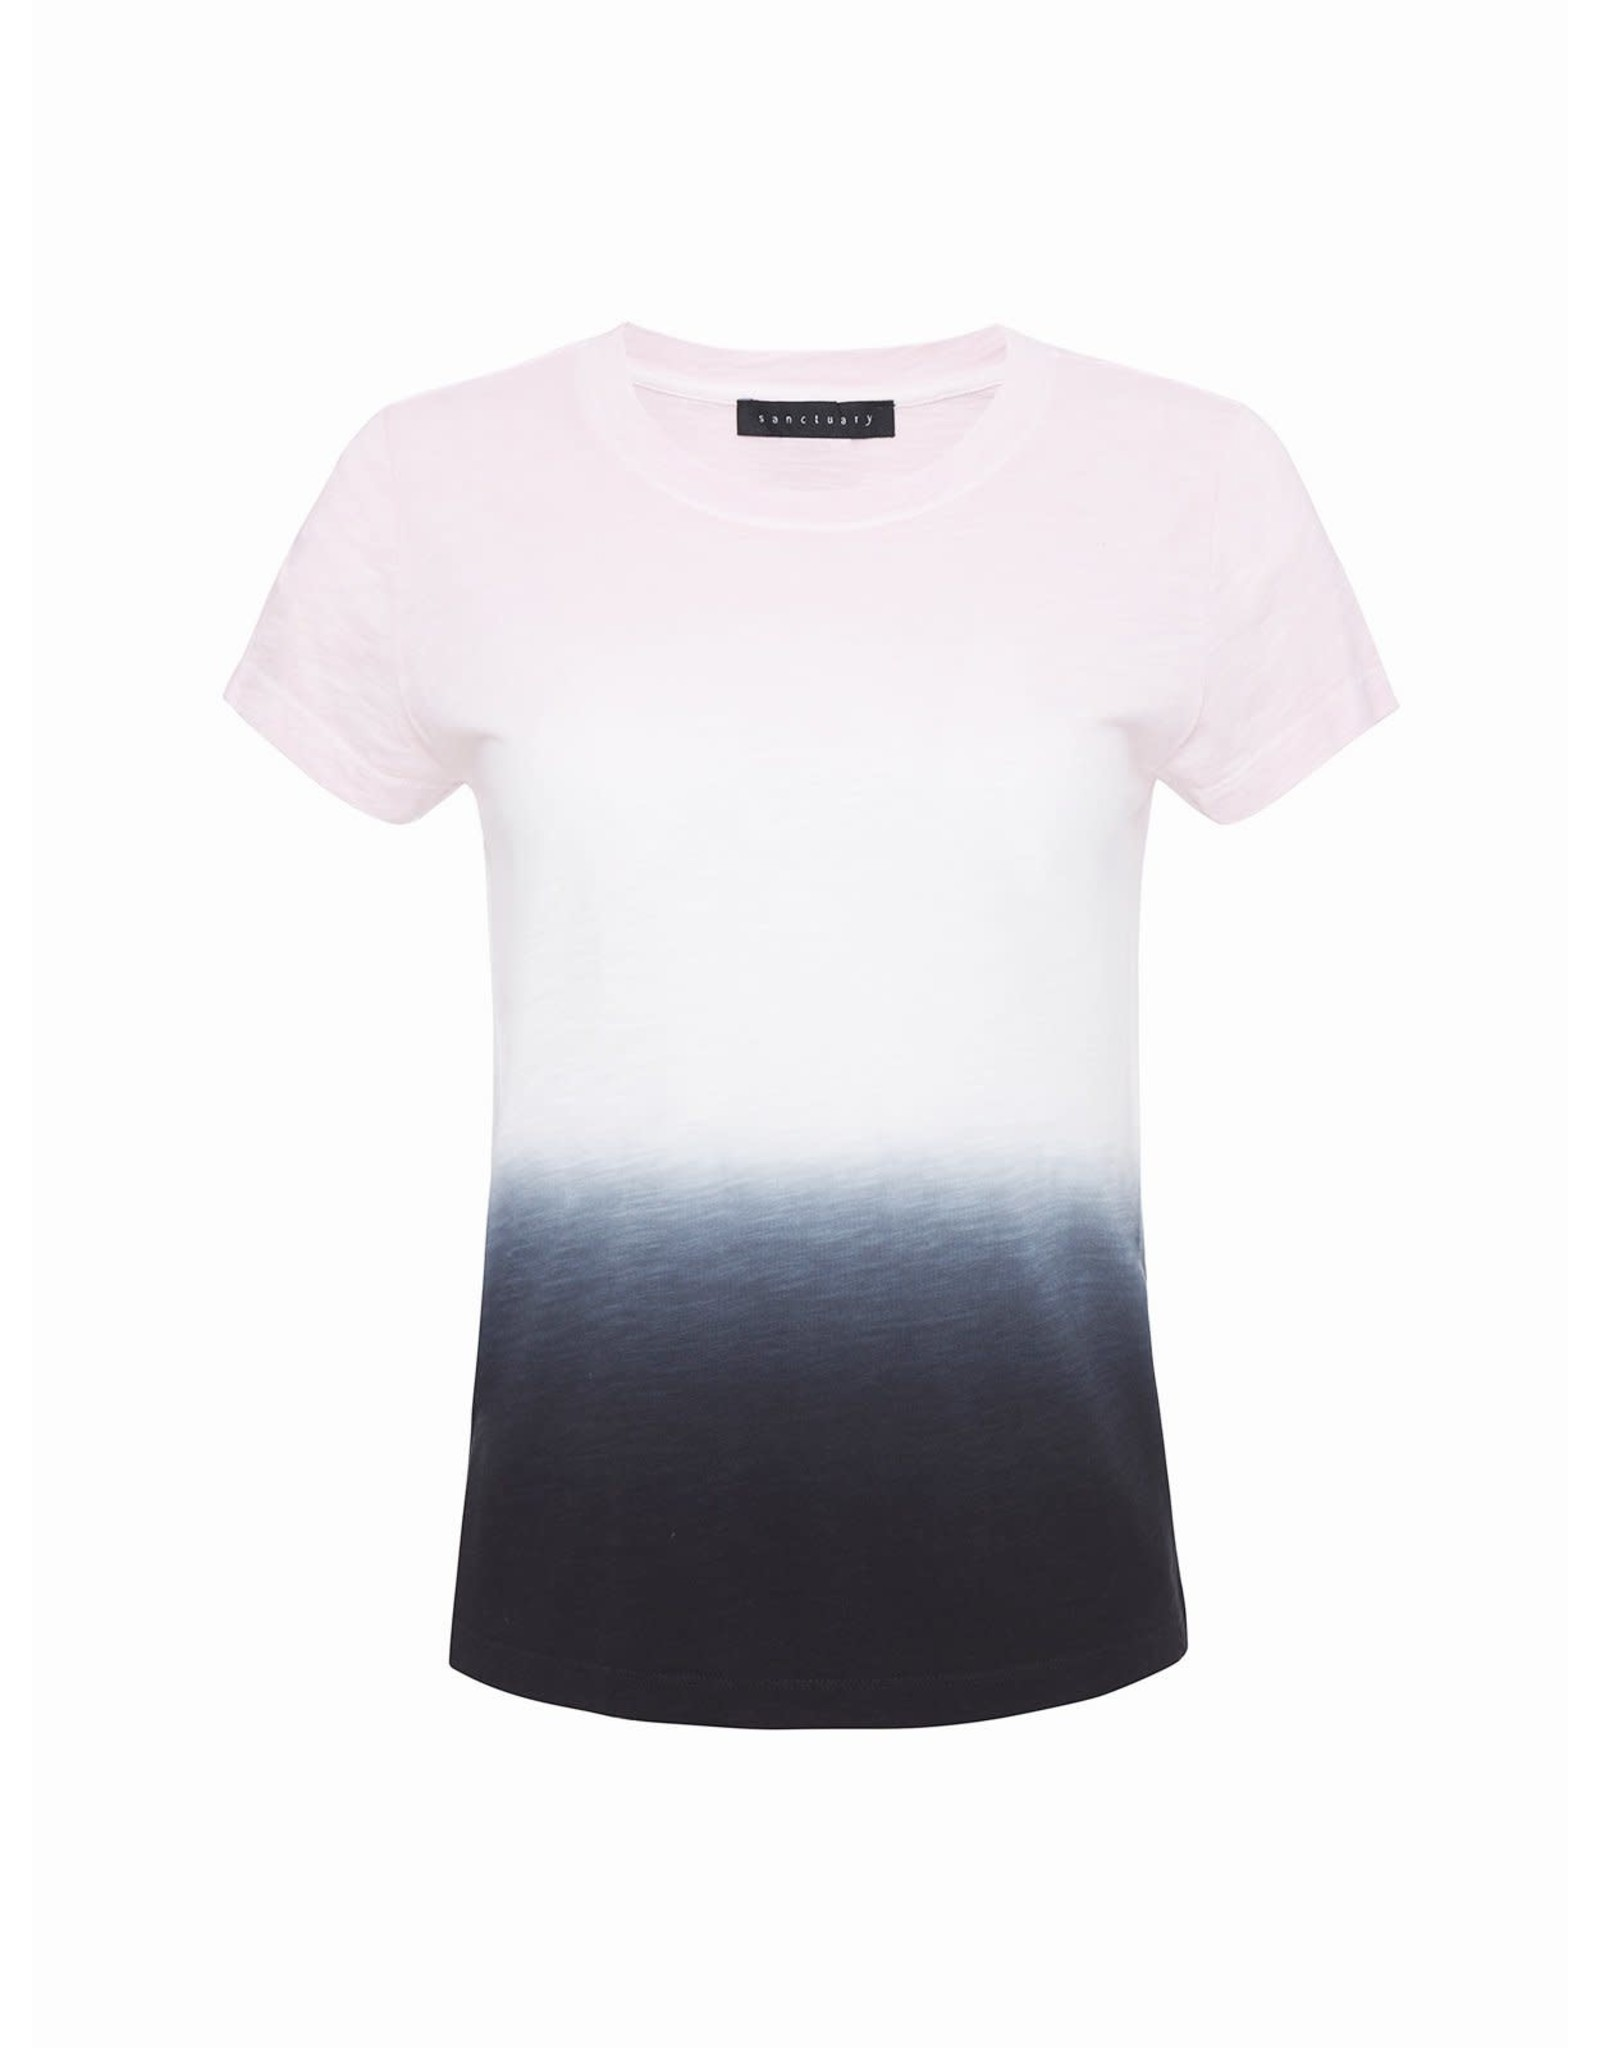 Sanctuary Sanctuary The Perfect Wash Tee - XS ONLY